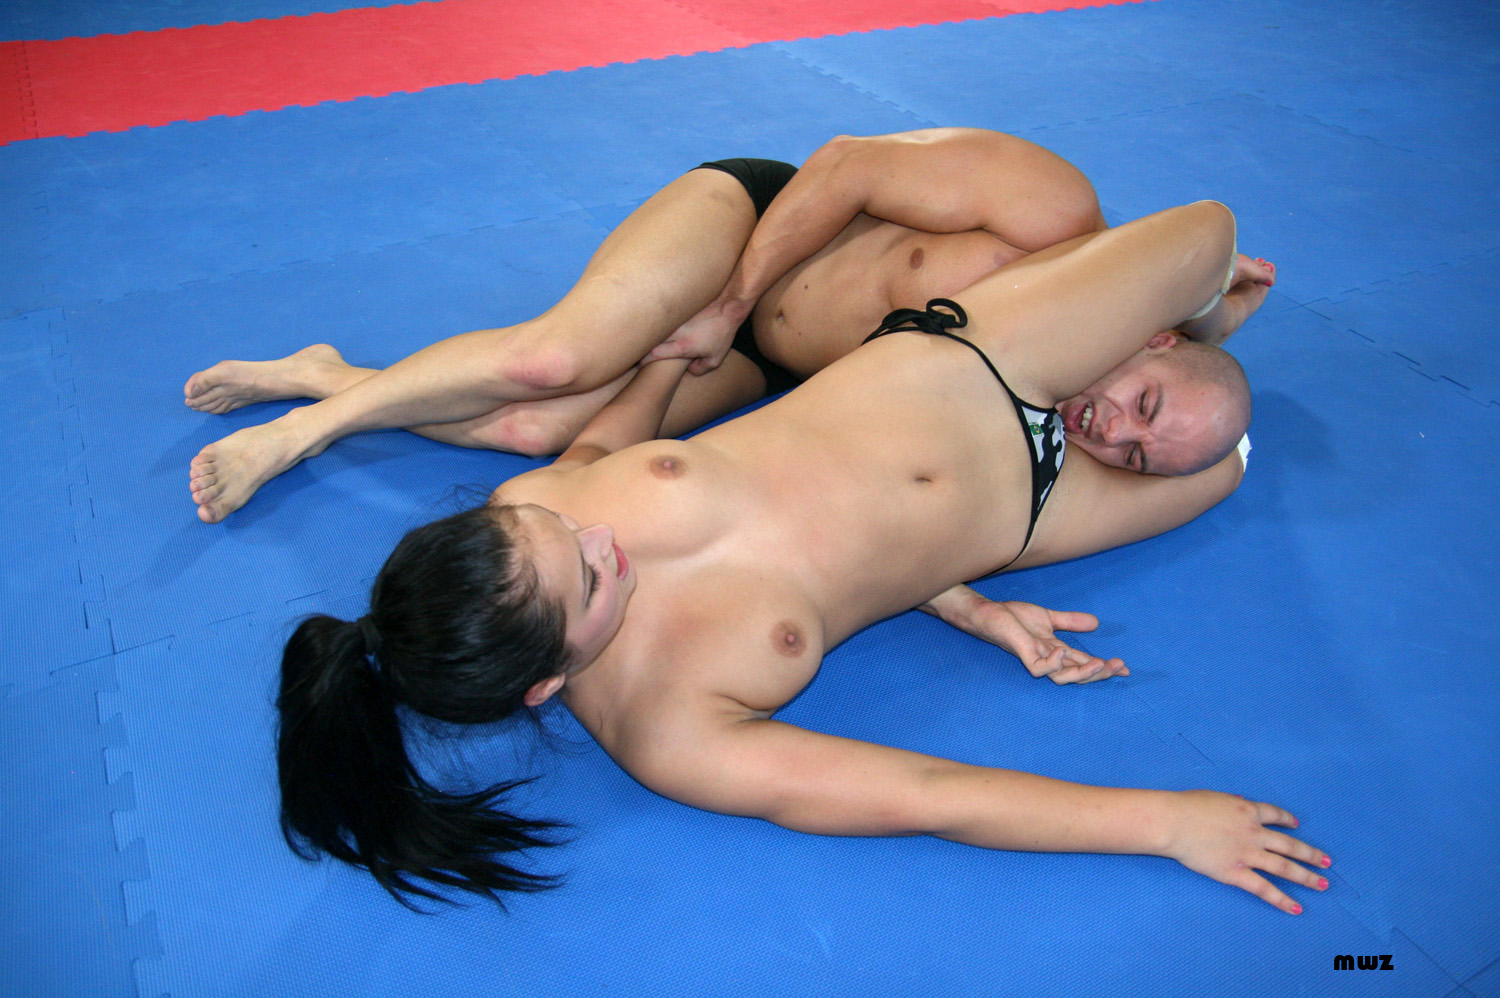 Domination mixed wrestling scissor submissions — 8